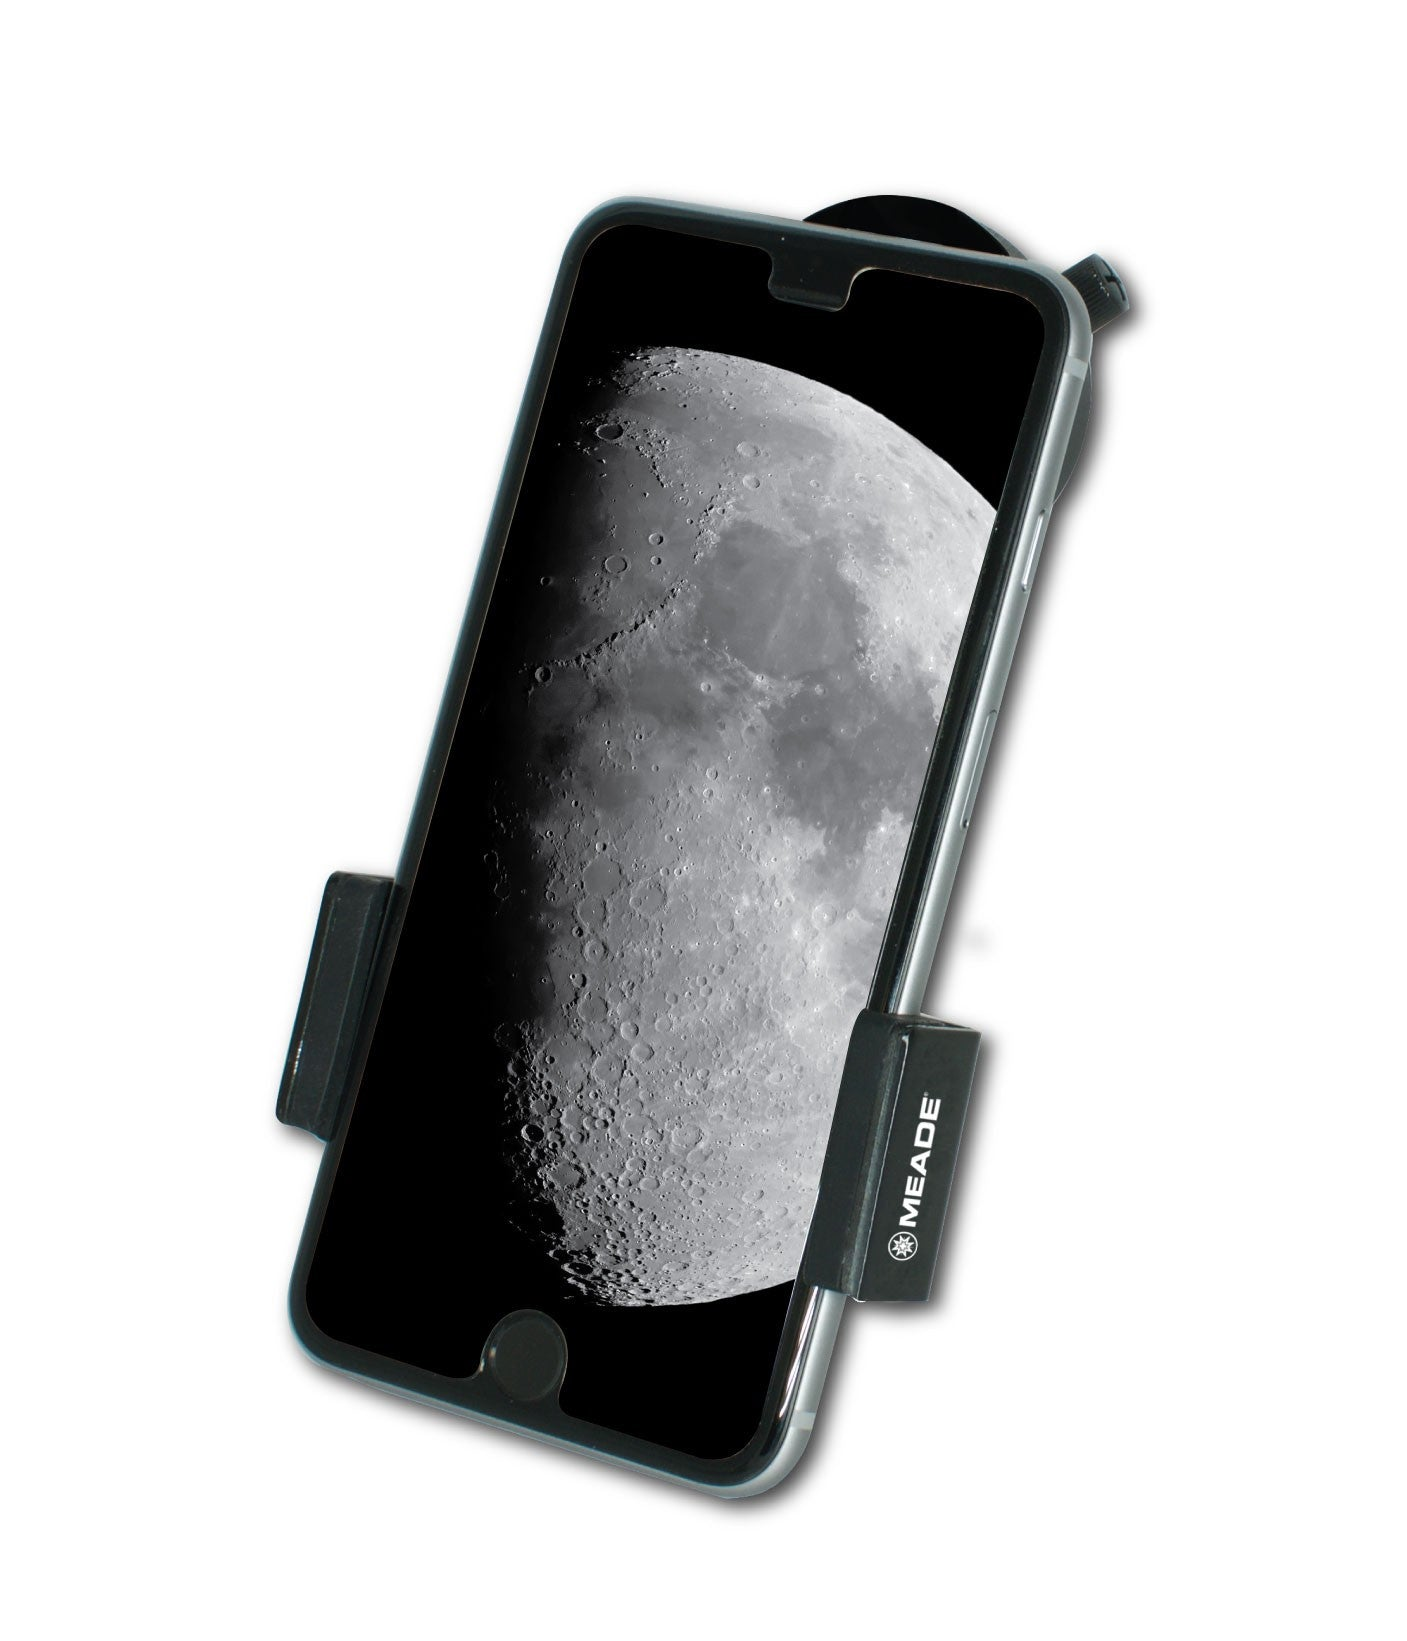 Meade Smart Phone Adapter - Telescopes - Meade - Helix Camera